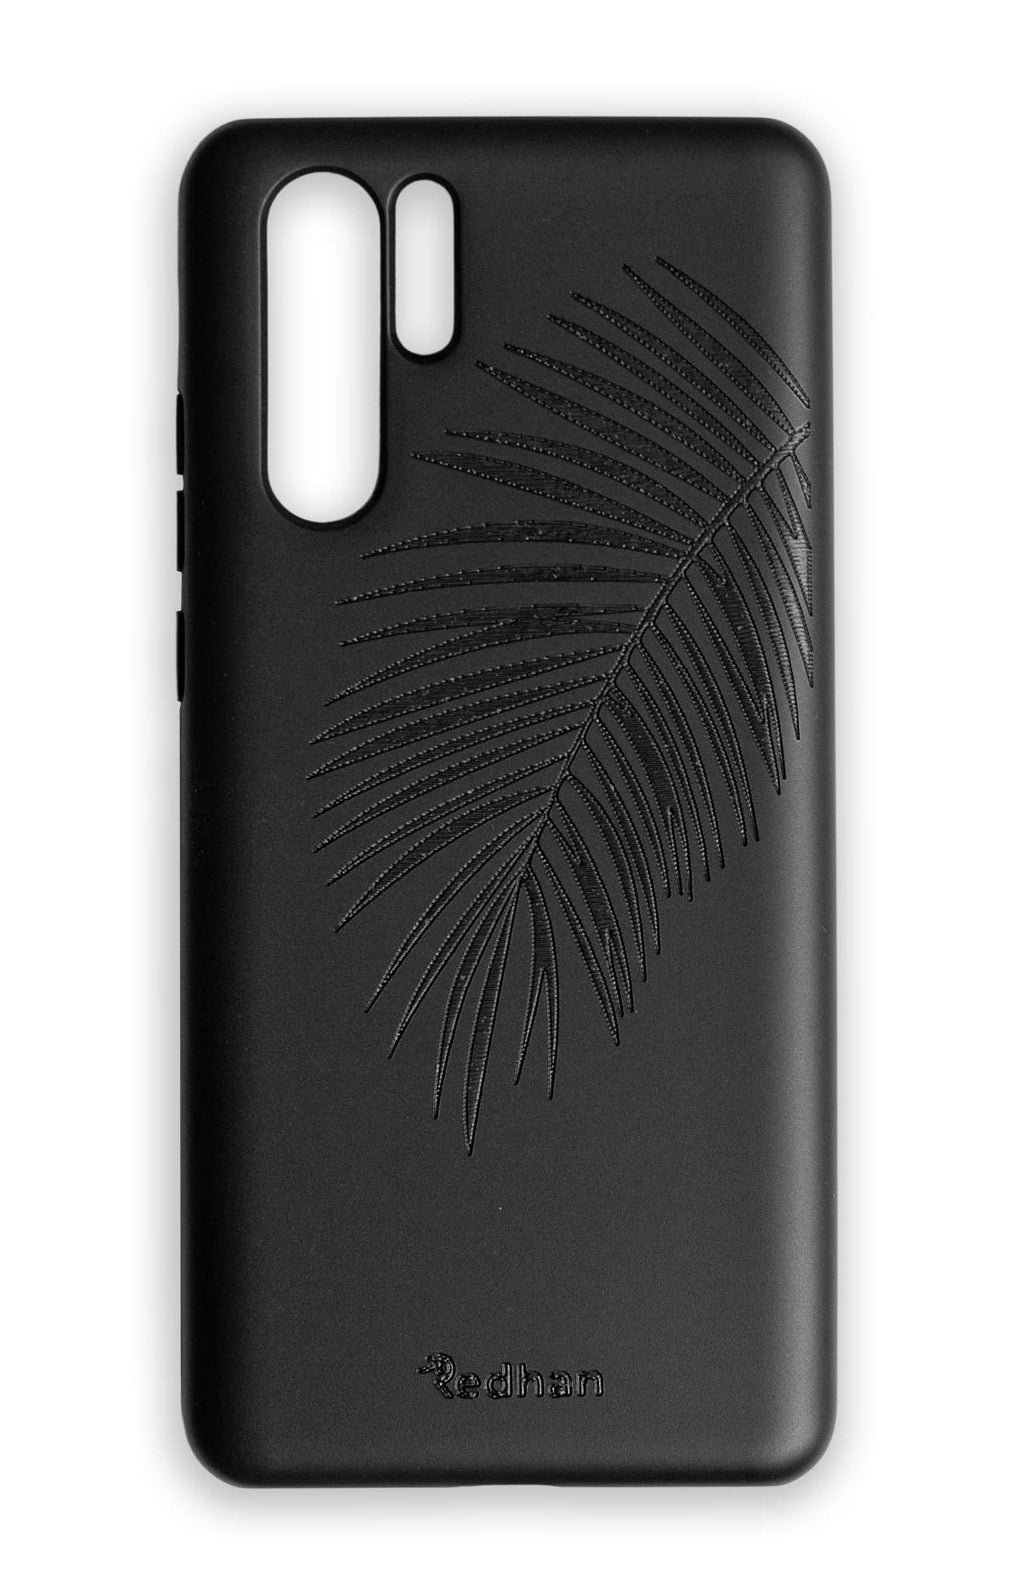 Eco Friendly Huawei P30 Pro Phone Case - Palm Leaf in Pitch Black